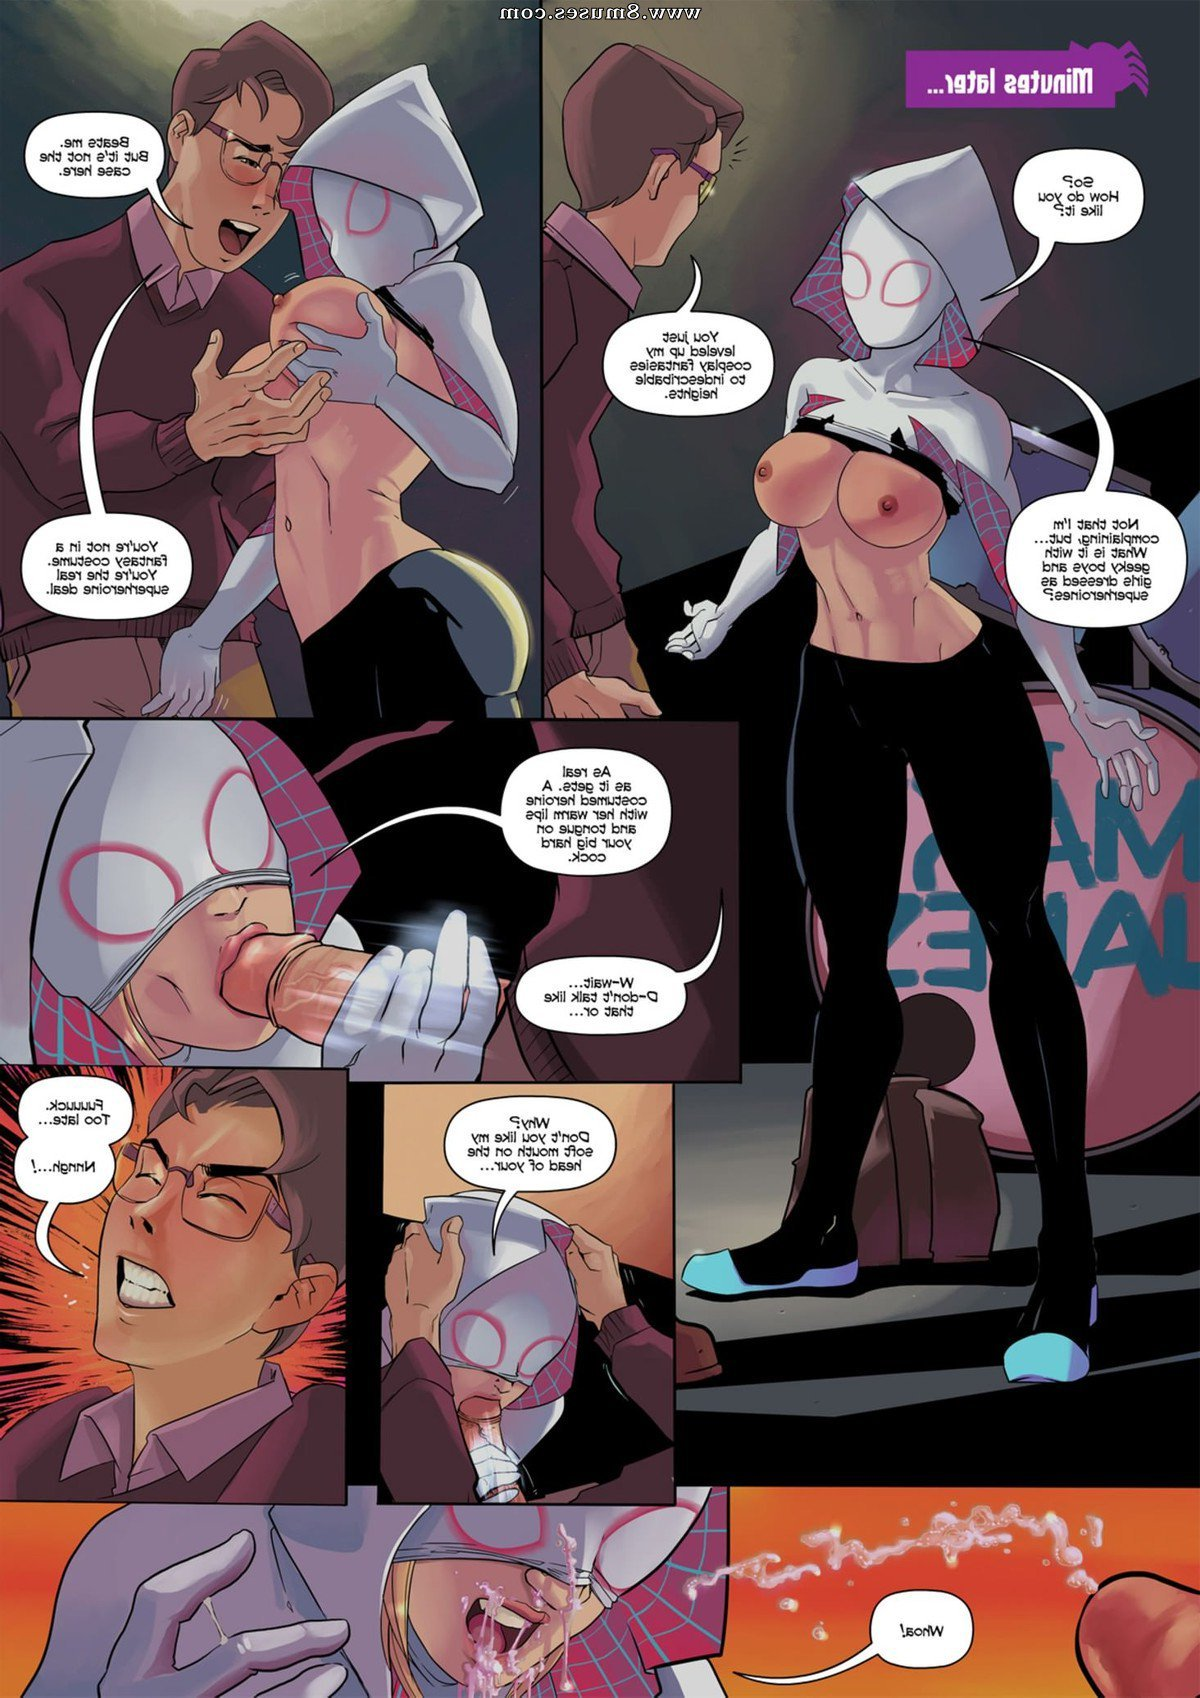 Tracy-Scops-Comics/SpiderGwen/Issue-1 SpiderGwen_-_Issue_1_7.jpg